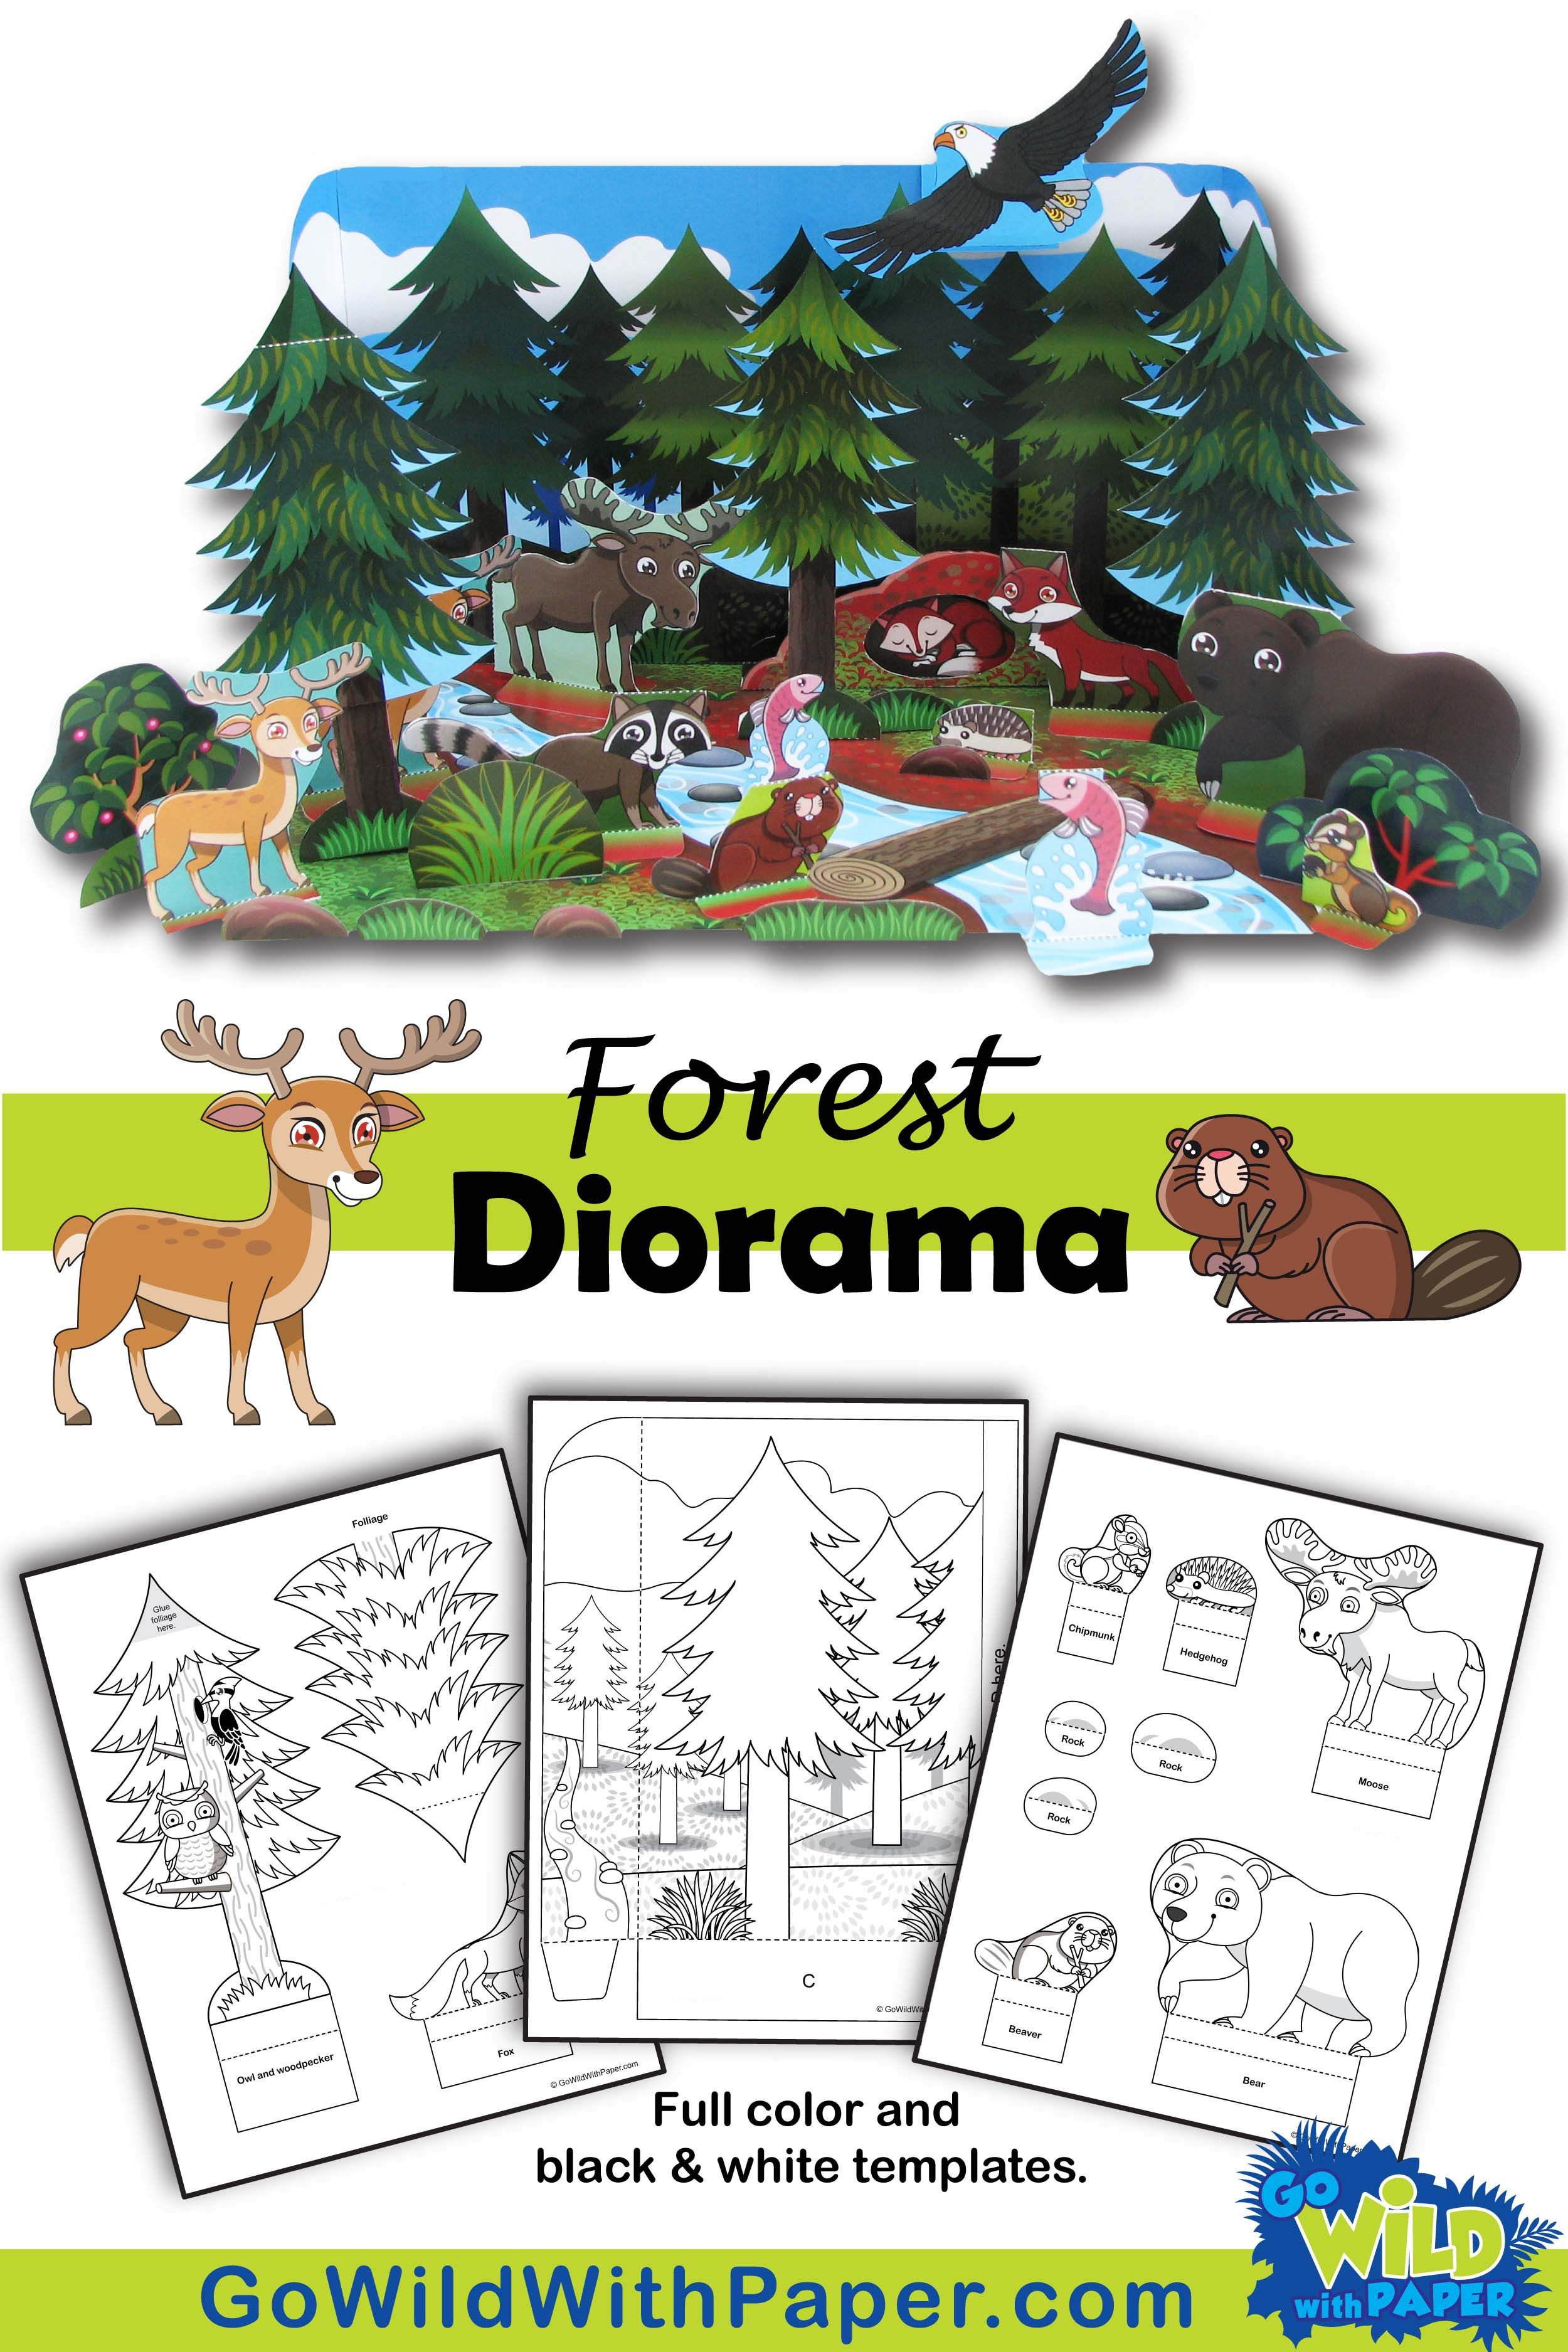 Make An Animal Habitat Diorama Of A Coniferous Forest With